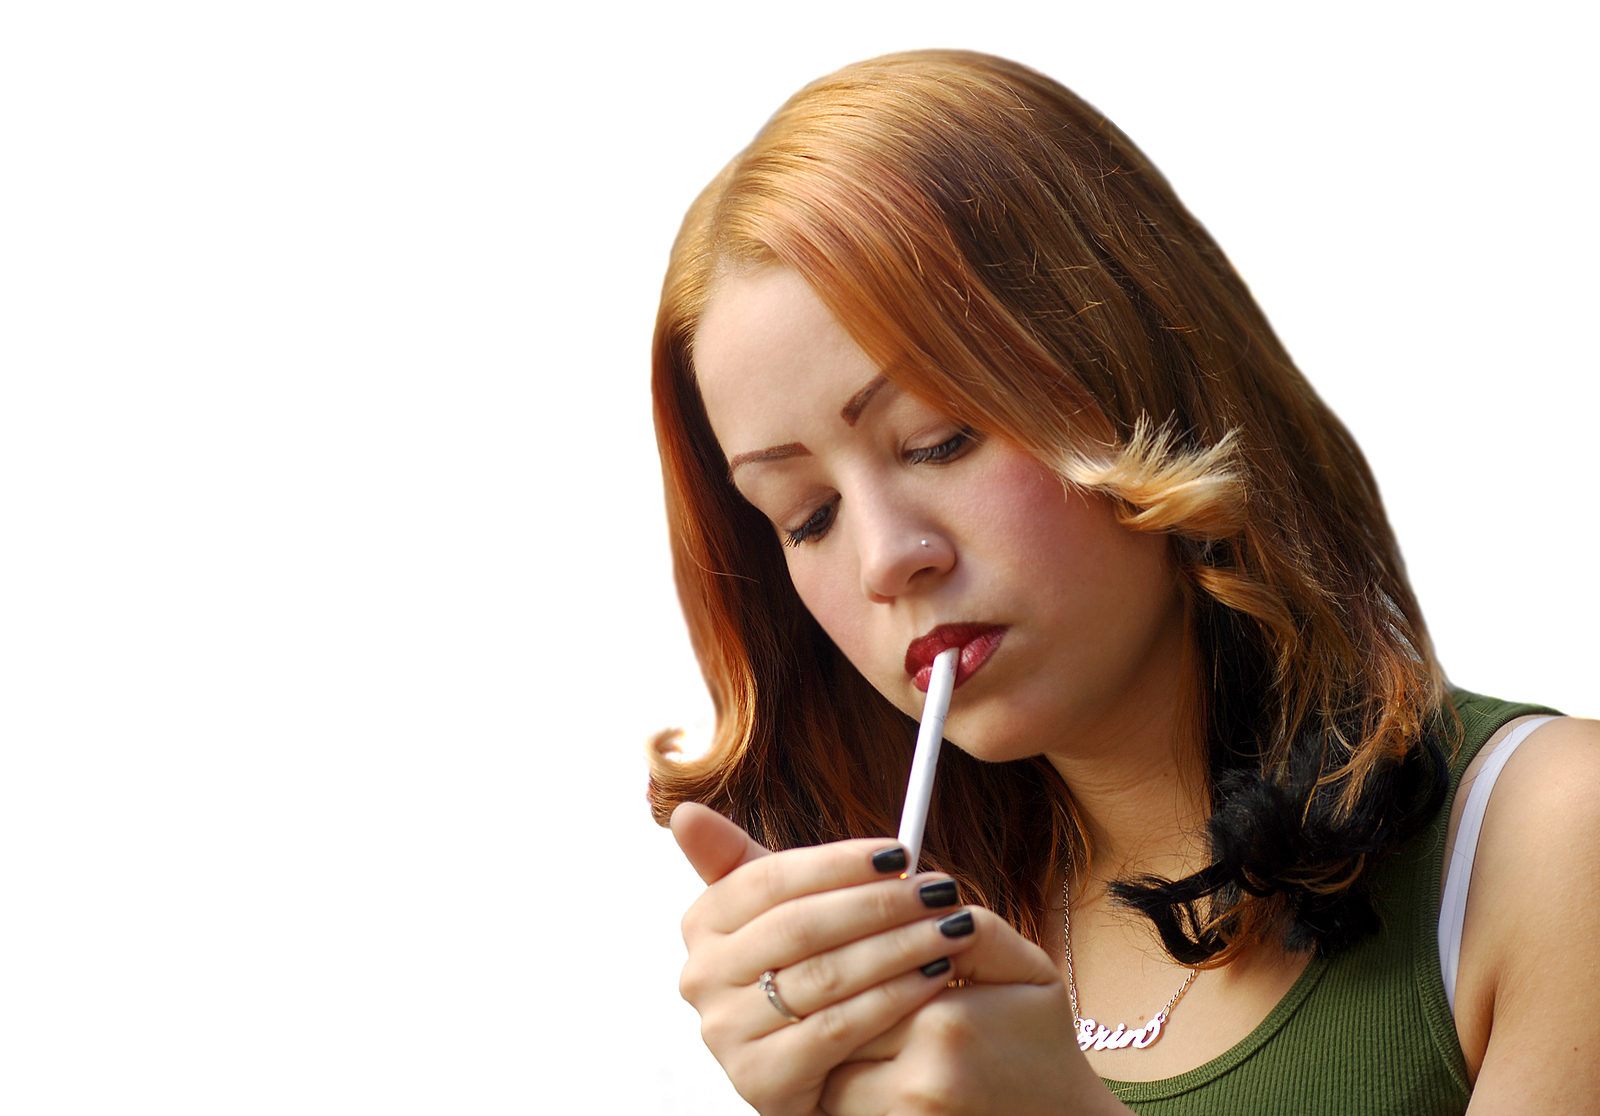 Most smokers started smoking when they were teenagers